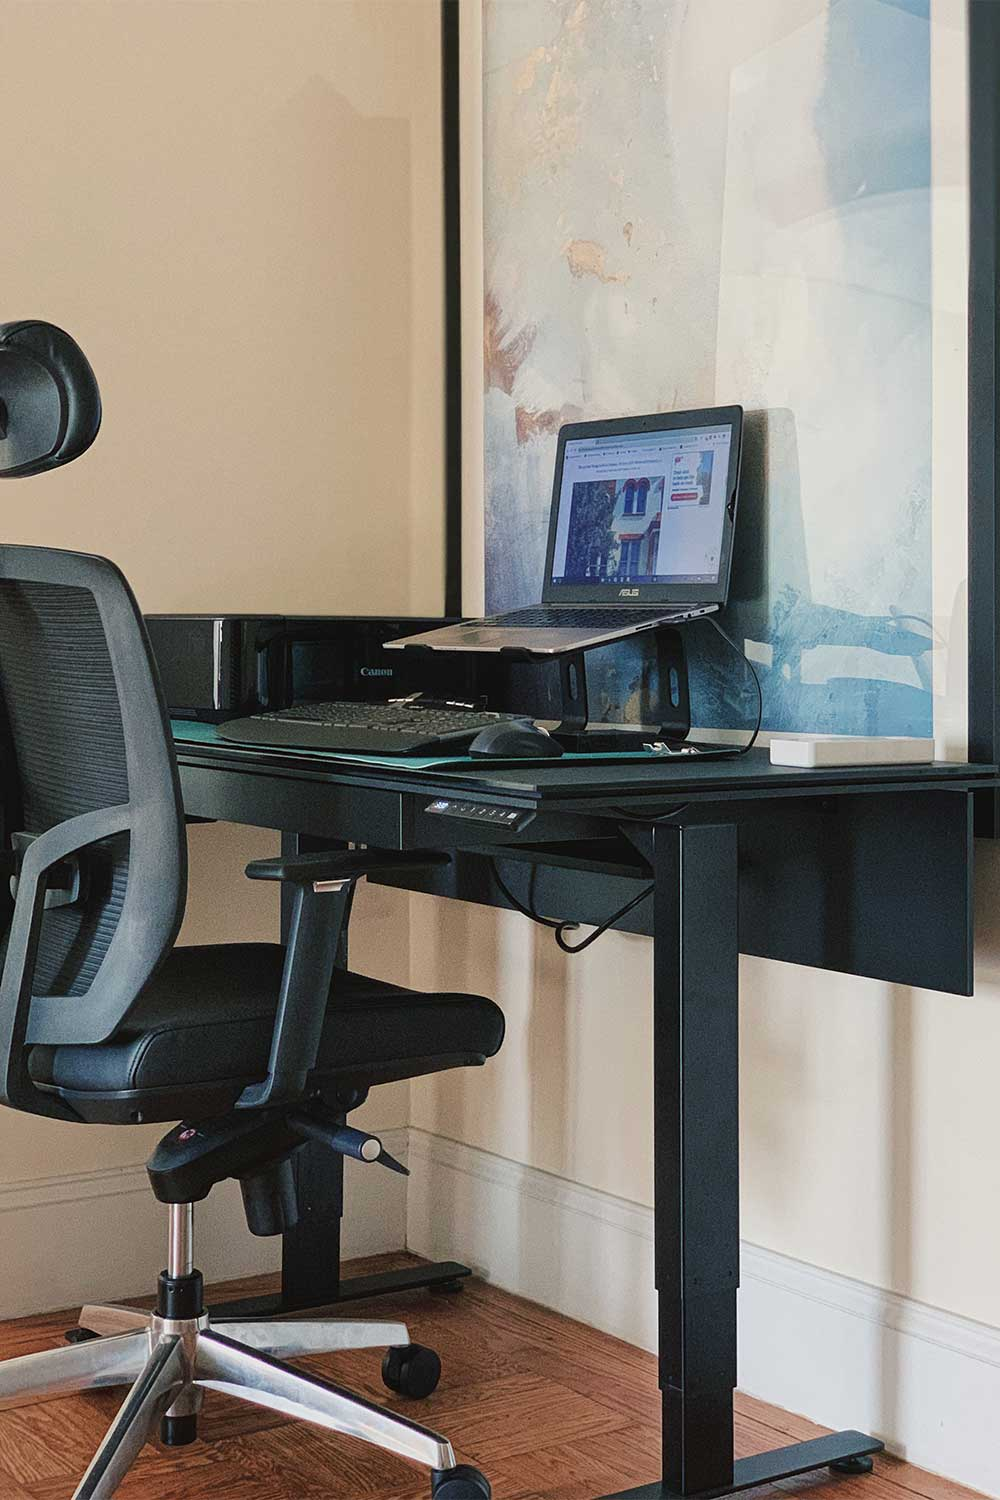 bdi-stance-6650-desk-review